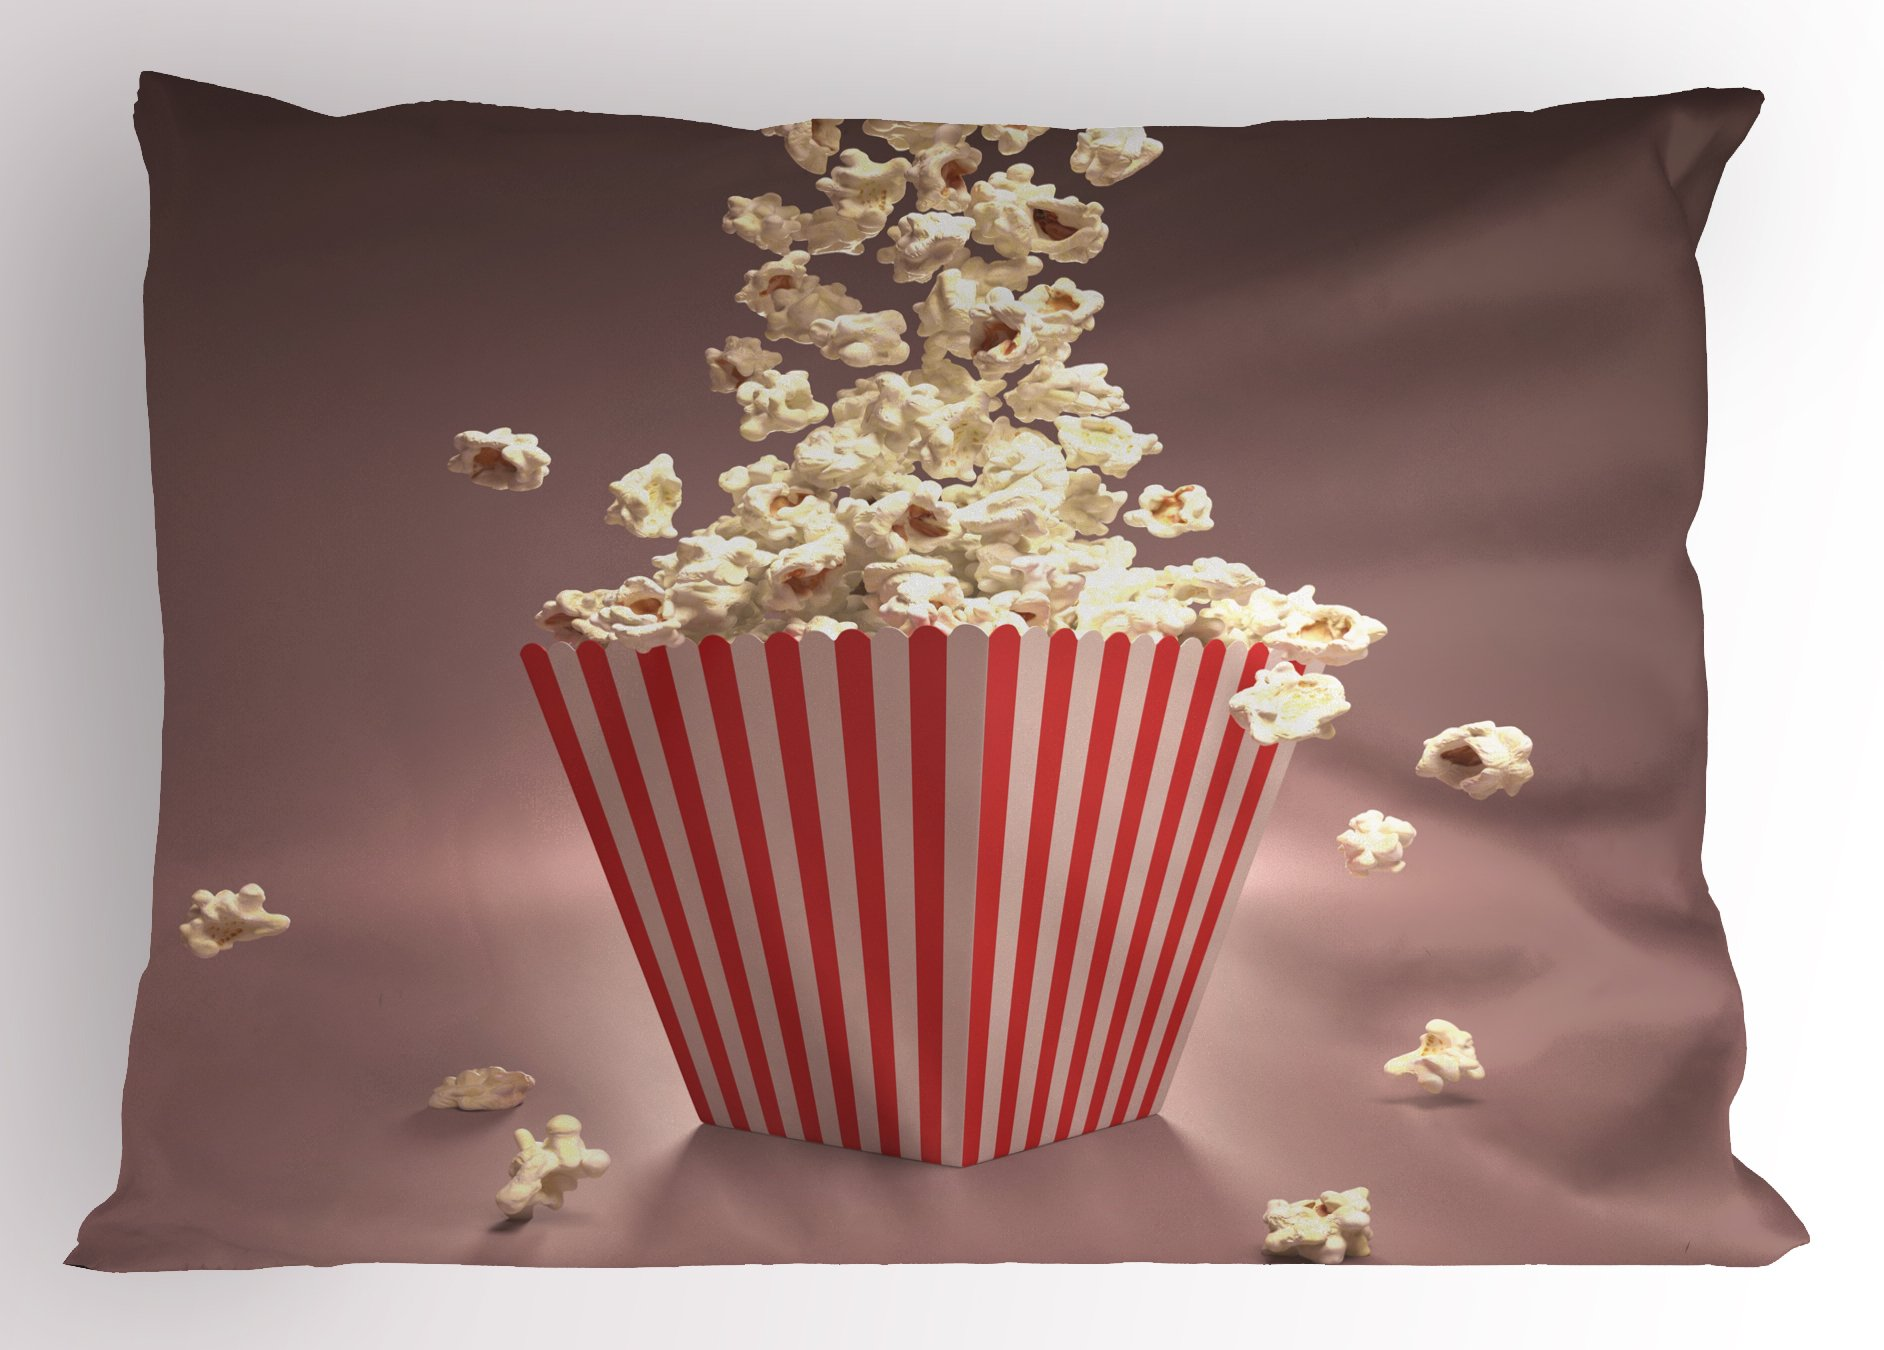 Ambesonne Retro Pillow Sham, Retro Style Popcorn Art Image Cinema Movie Theater Theme in Classical Display, Decorative Standard Queen Size Printed Pillowcase, 30 X 20 inches, Light Red White